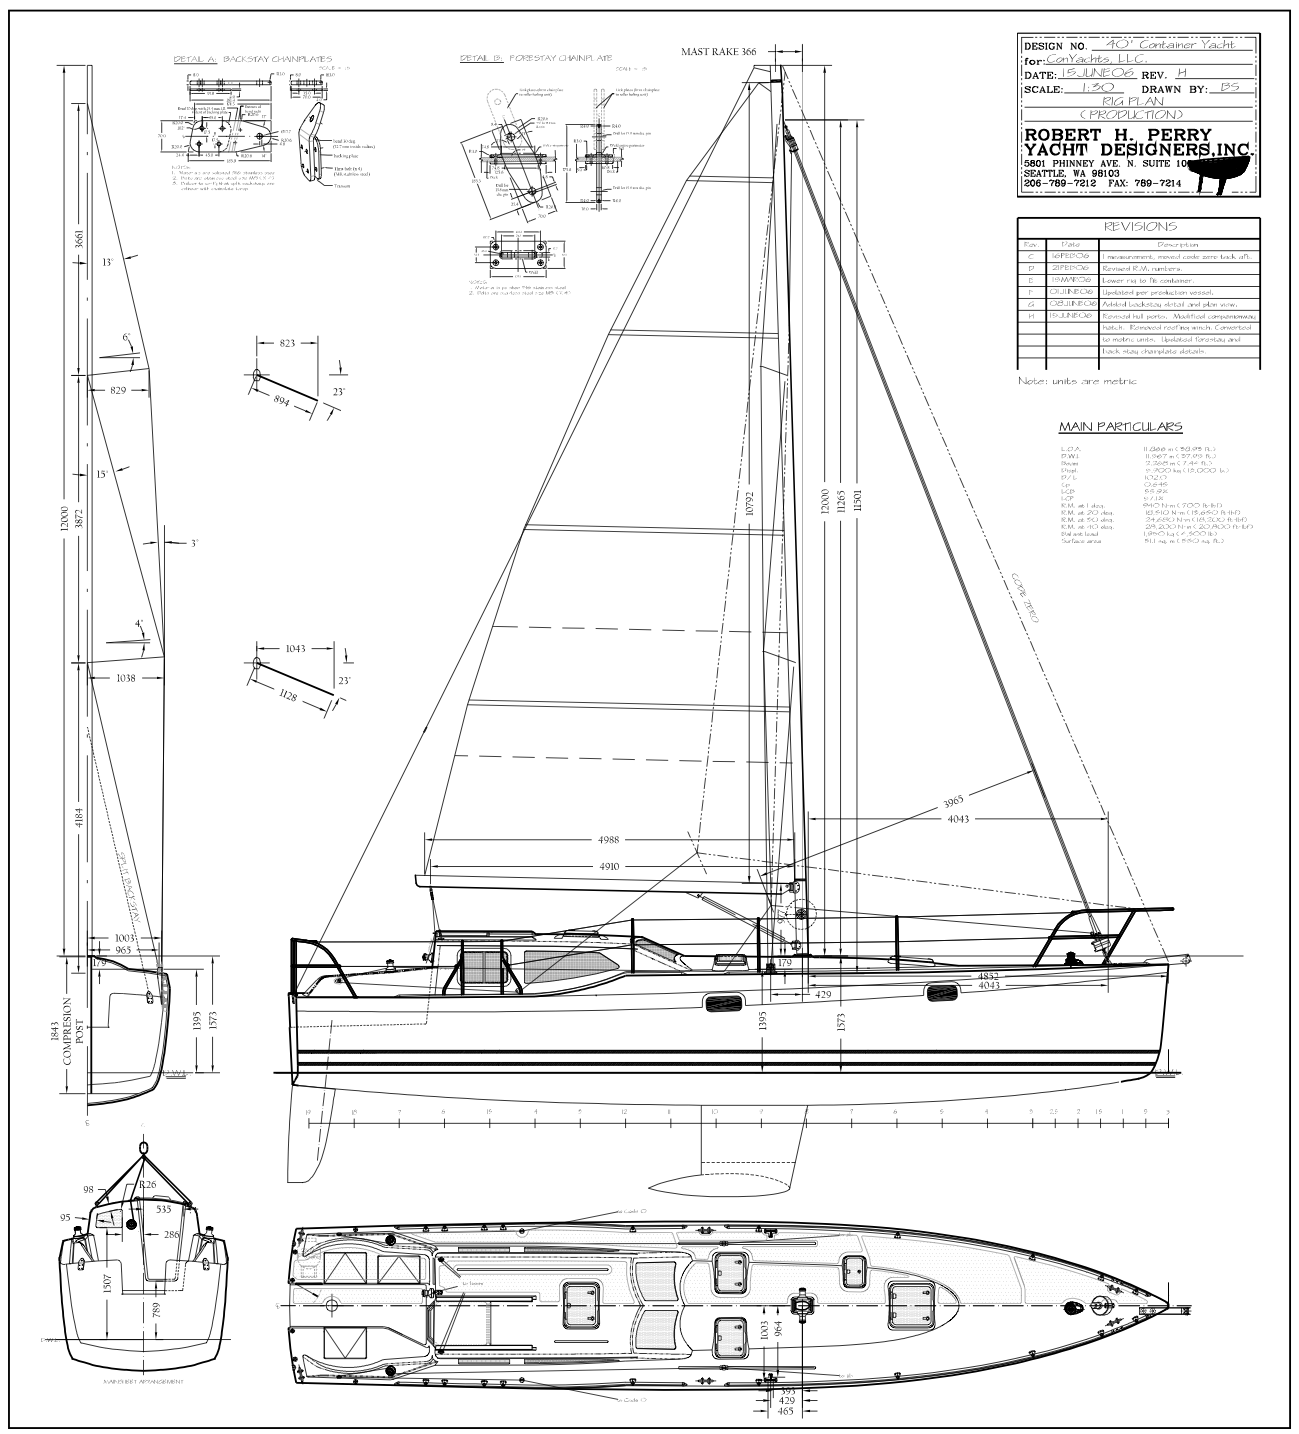 Click image for larger version  Name:farharbour39sailplanlarge.png Views:330 Size:398.3 KB ID:93281